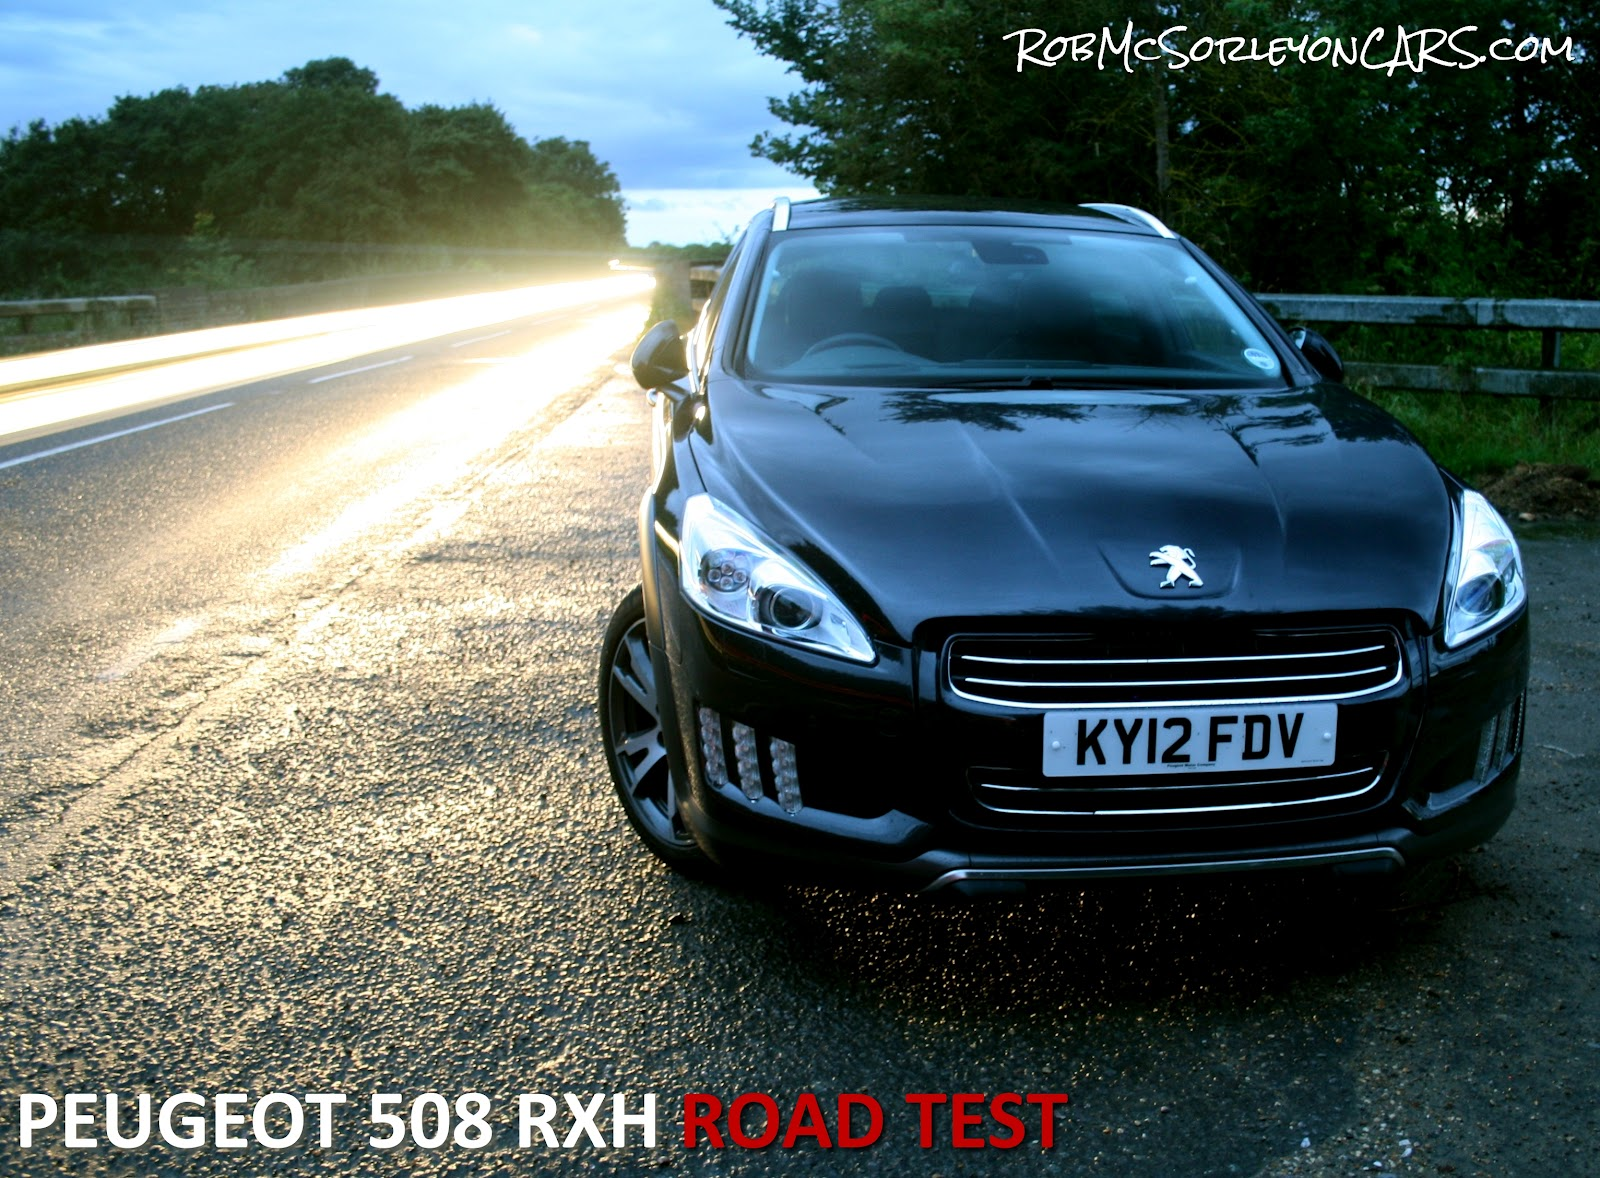 robmcsorleyoncars 2012 peugeot 508 rxh full road test. Black Bedroom Furniture Sets. Home Design Ideas